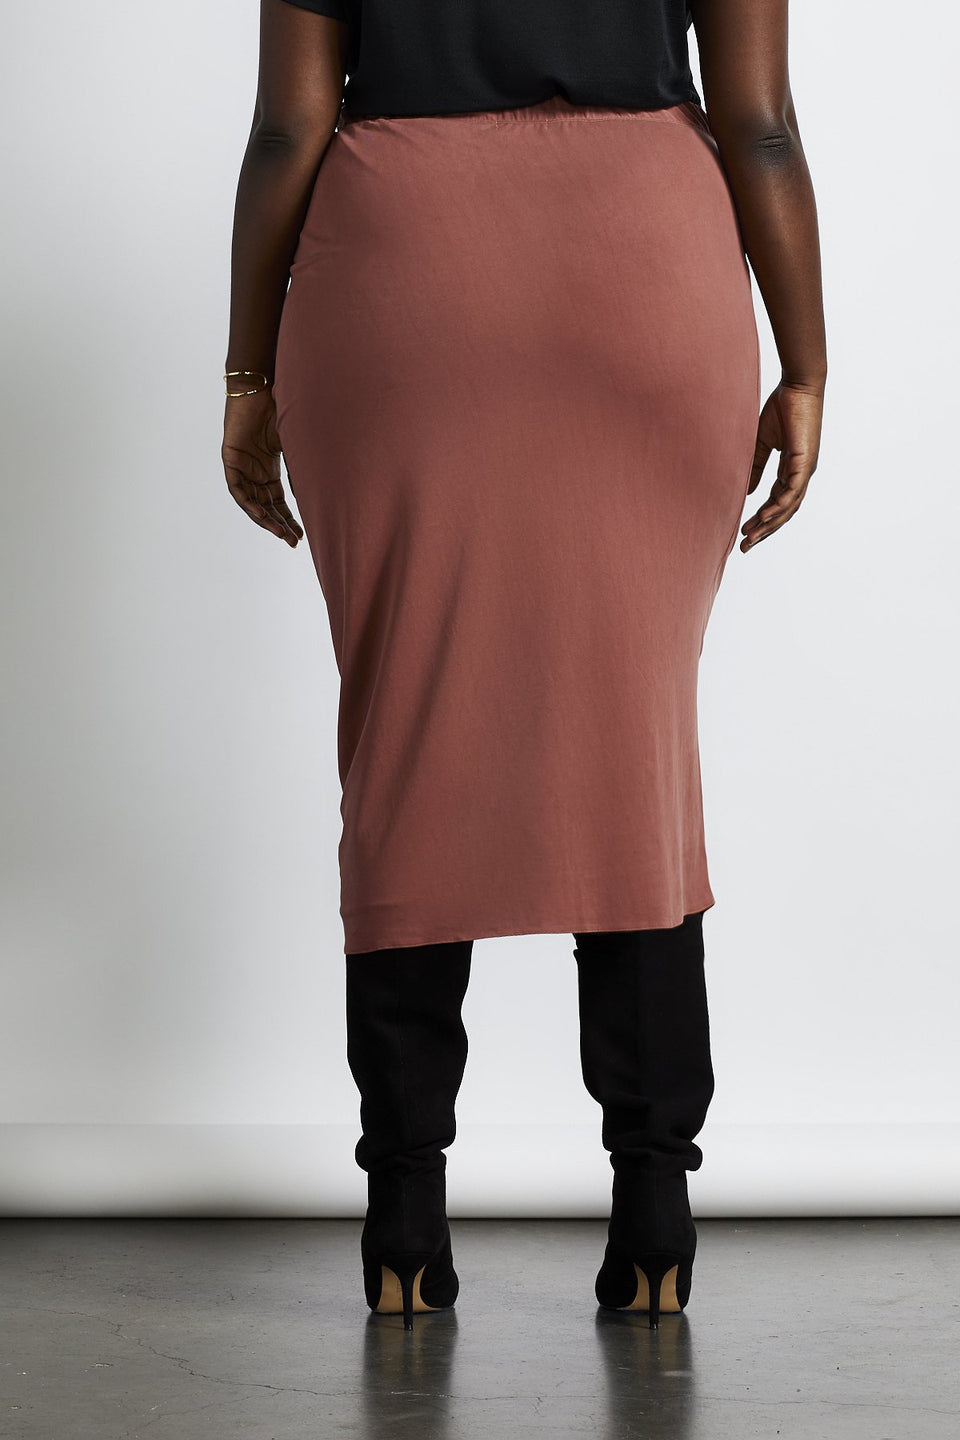 Seville Cinched Skirt in Charcoal